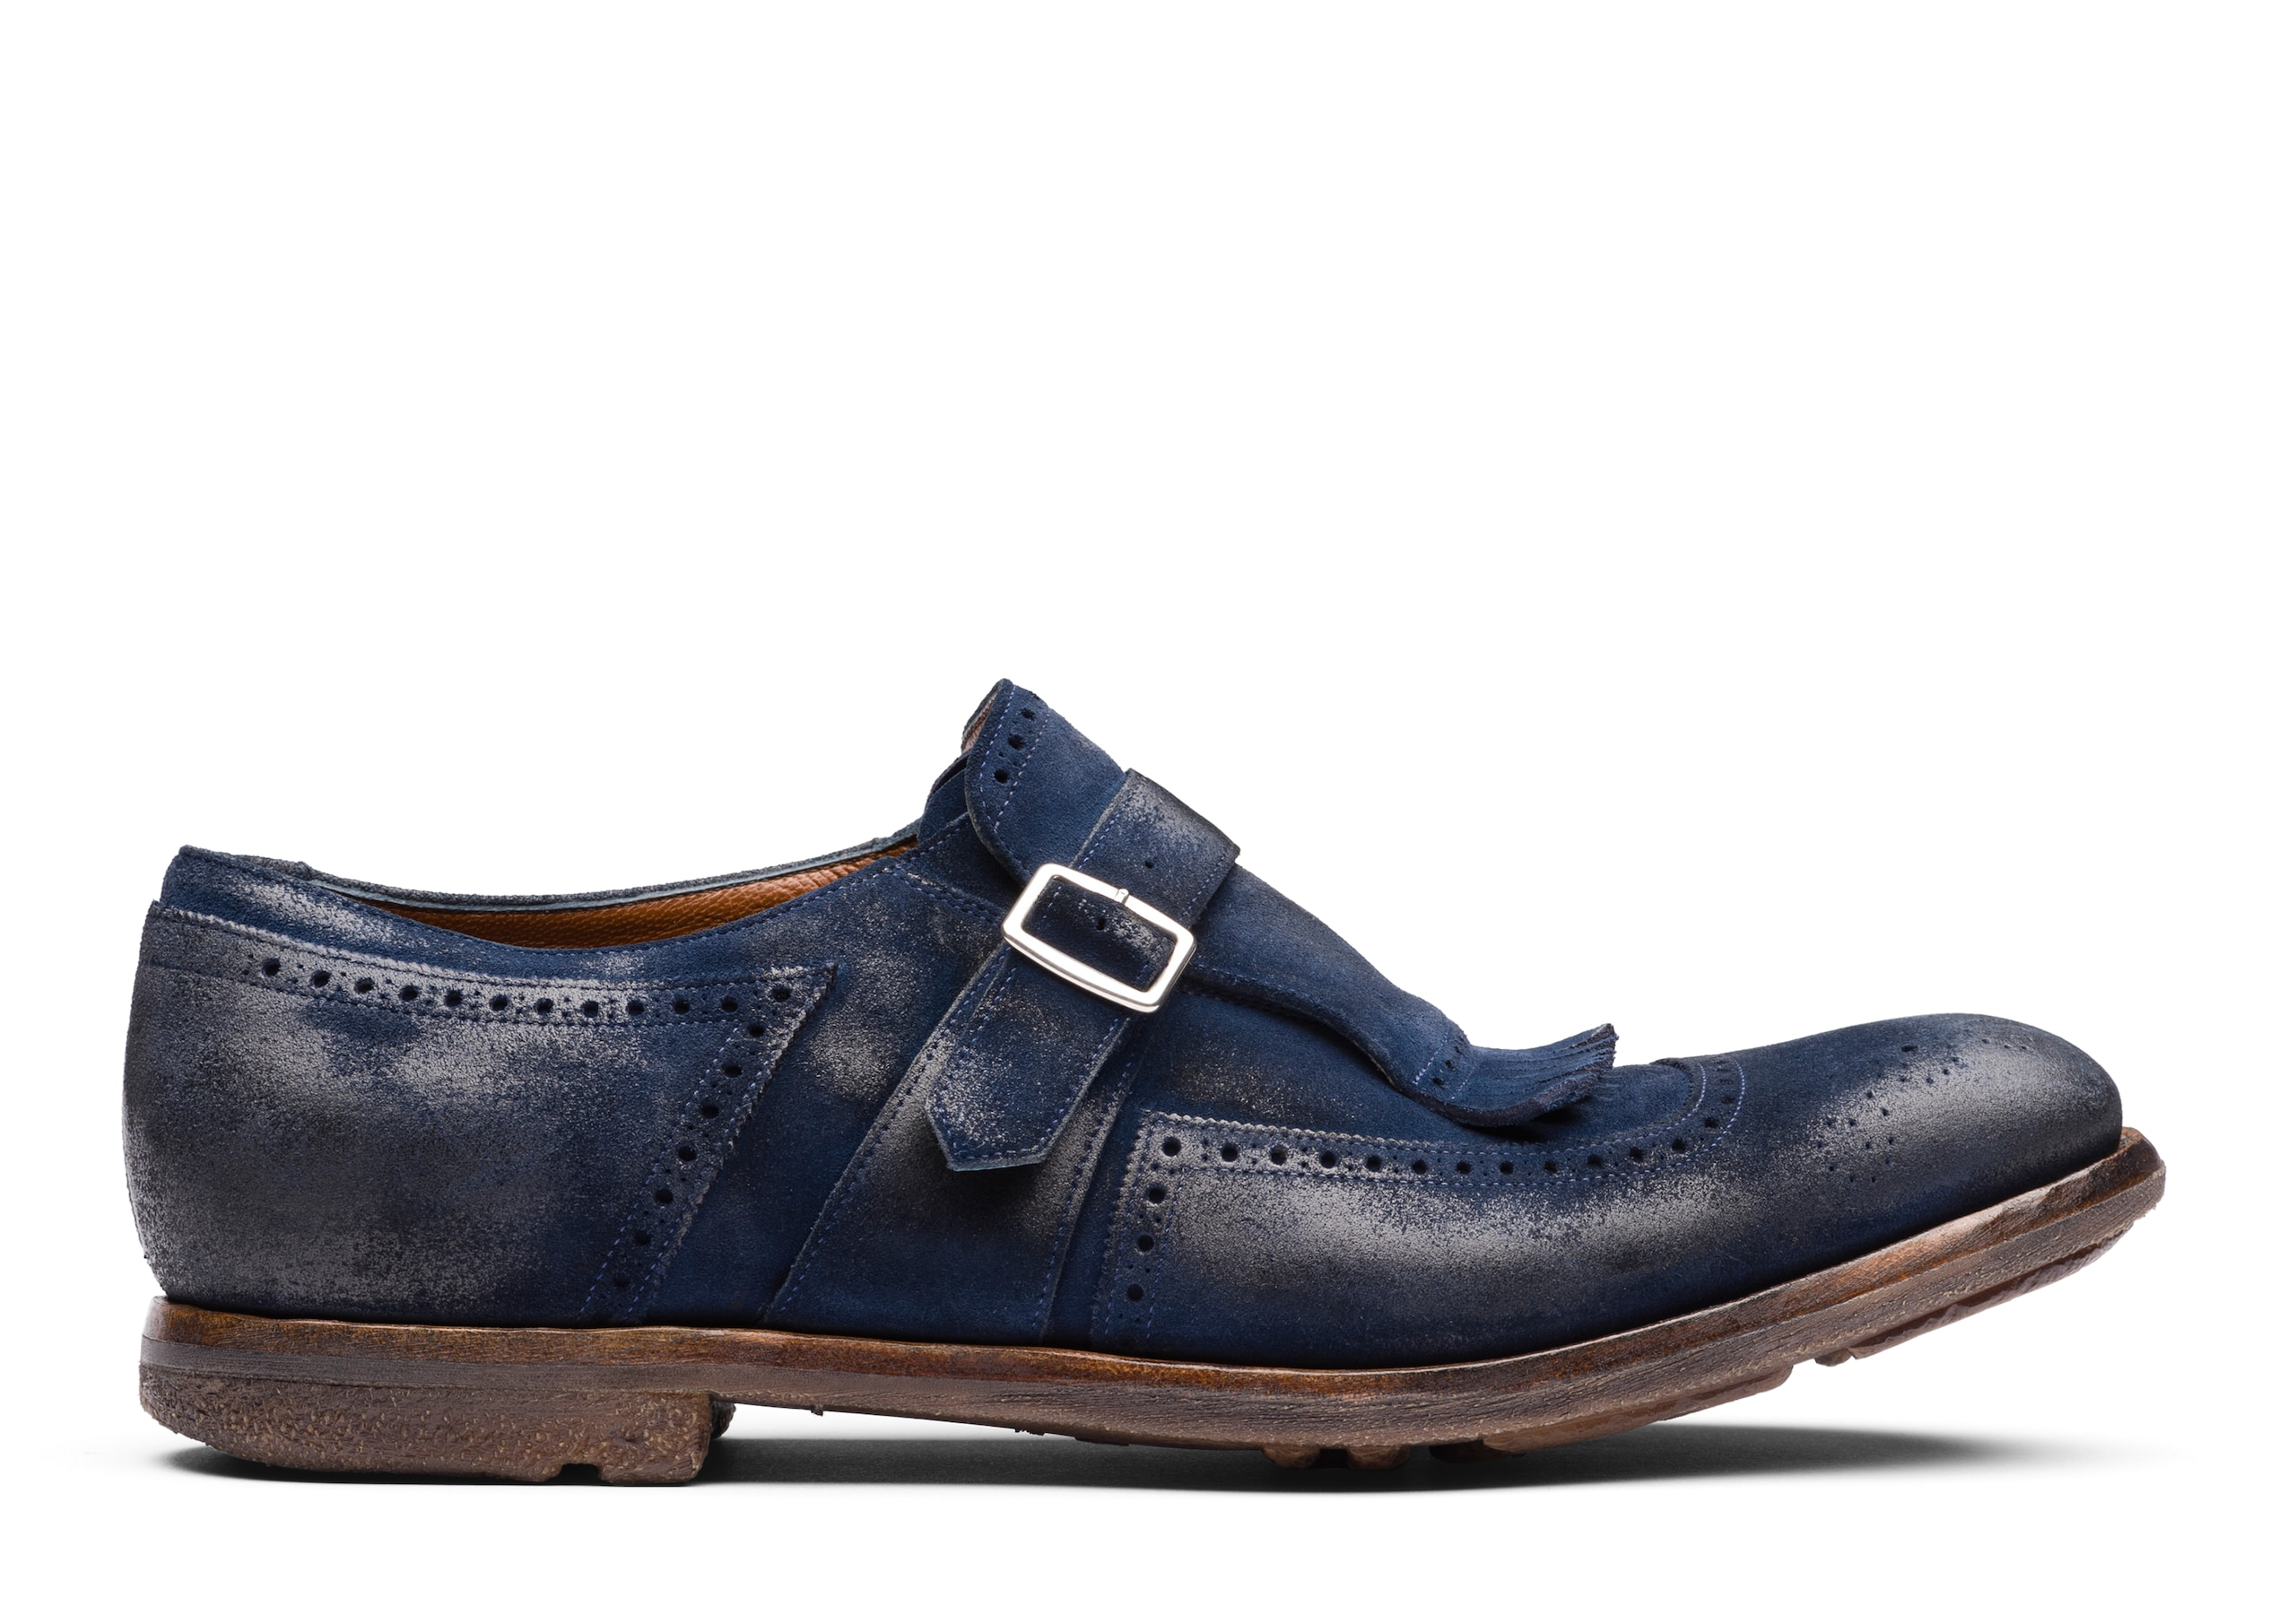 Shanghai Church's Vintage Suede Buckle Loafer Blue